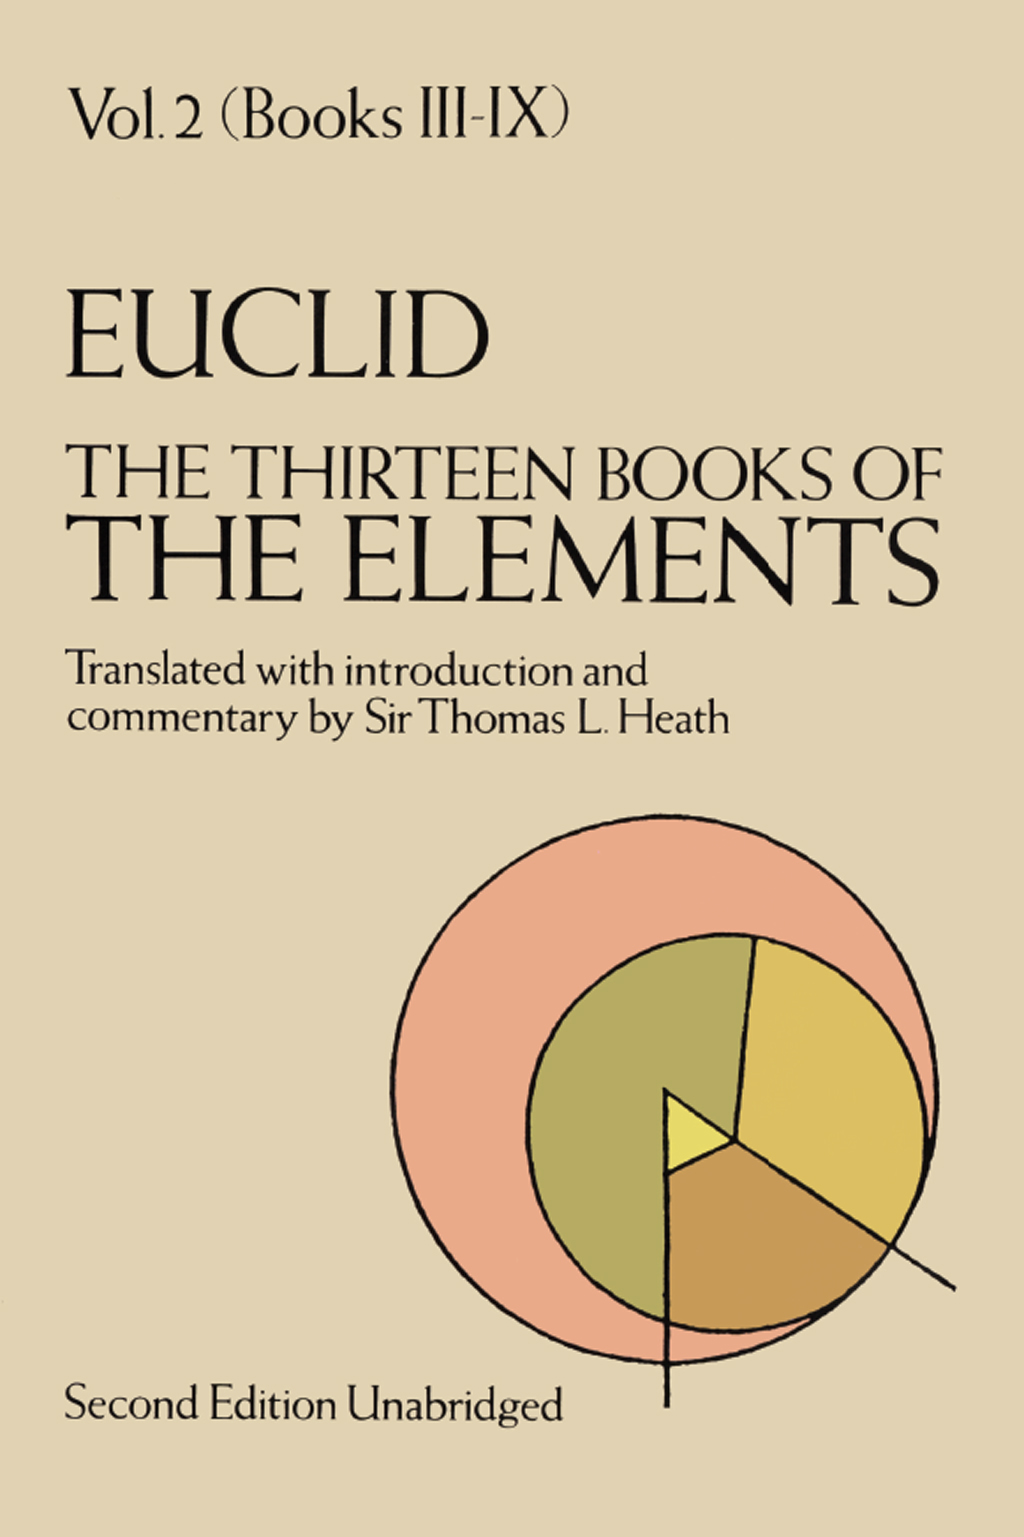 The Thirteen Books of the Elements, Vol. 2 | Mathematical analysis ...